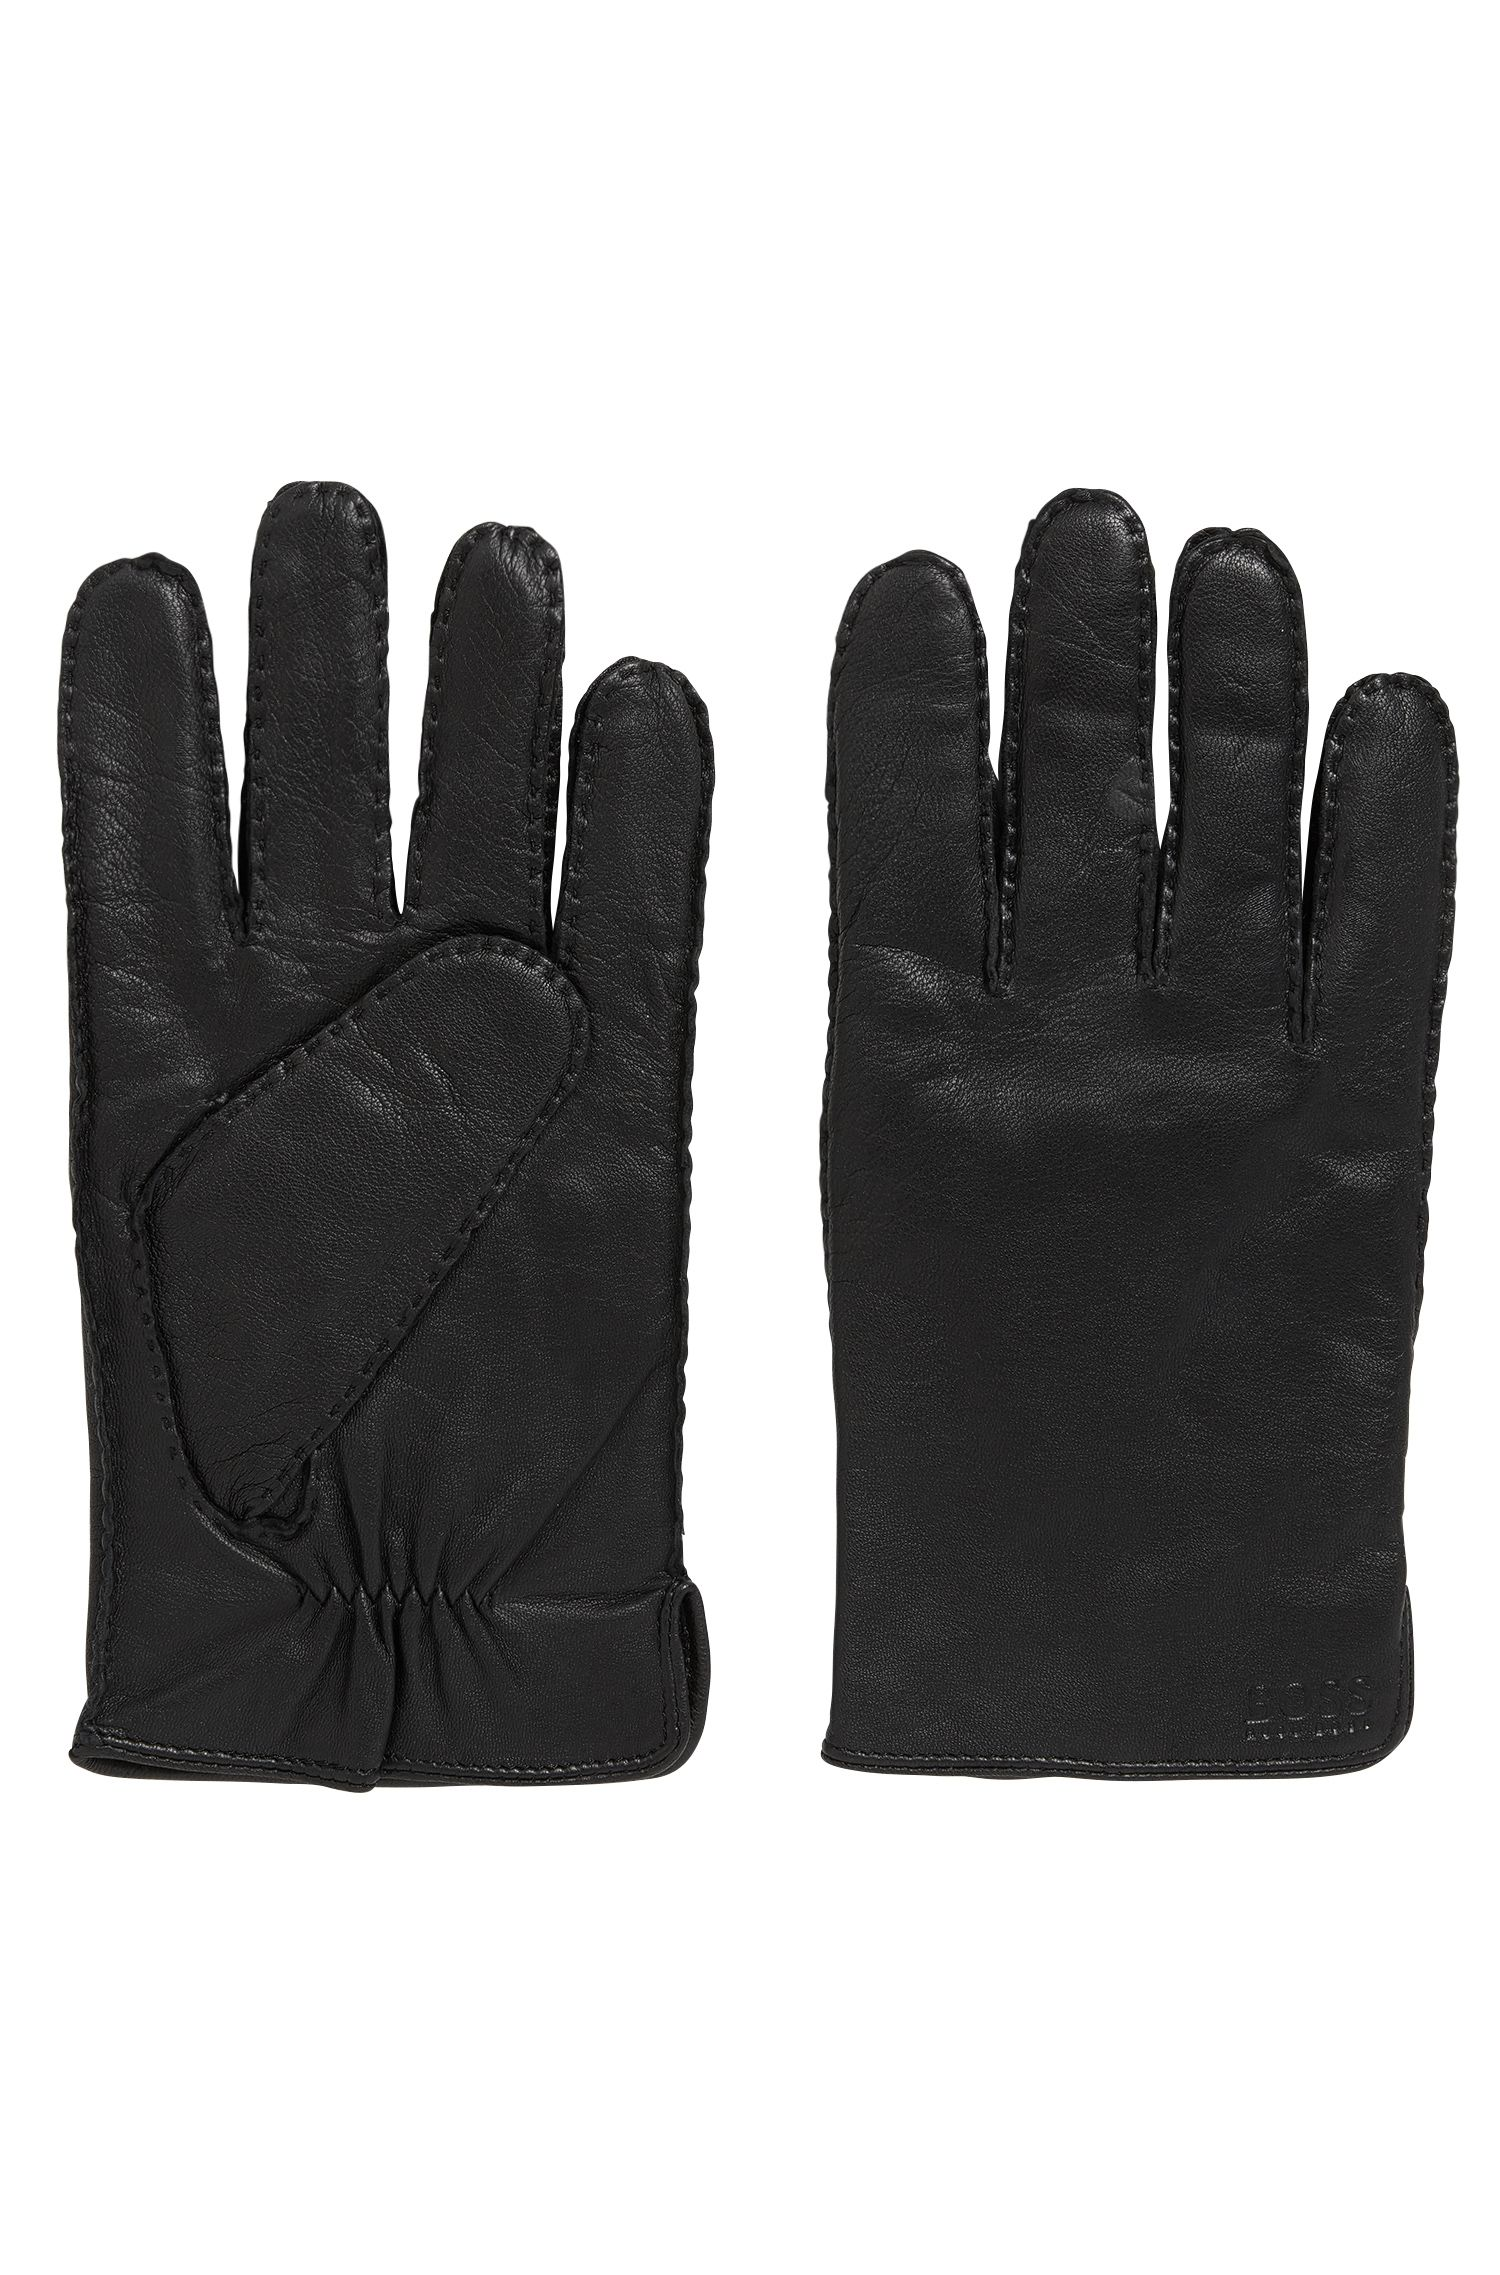 Nappa leather gloves with gathering detail